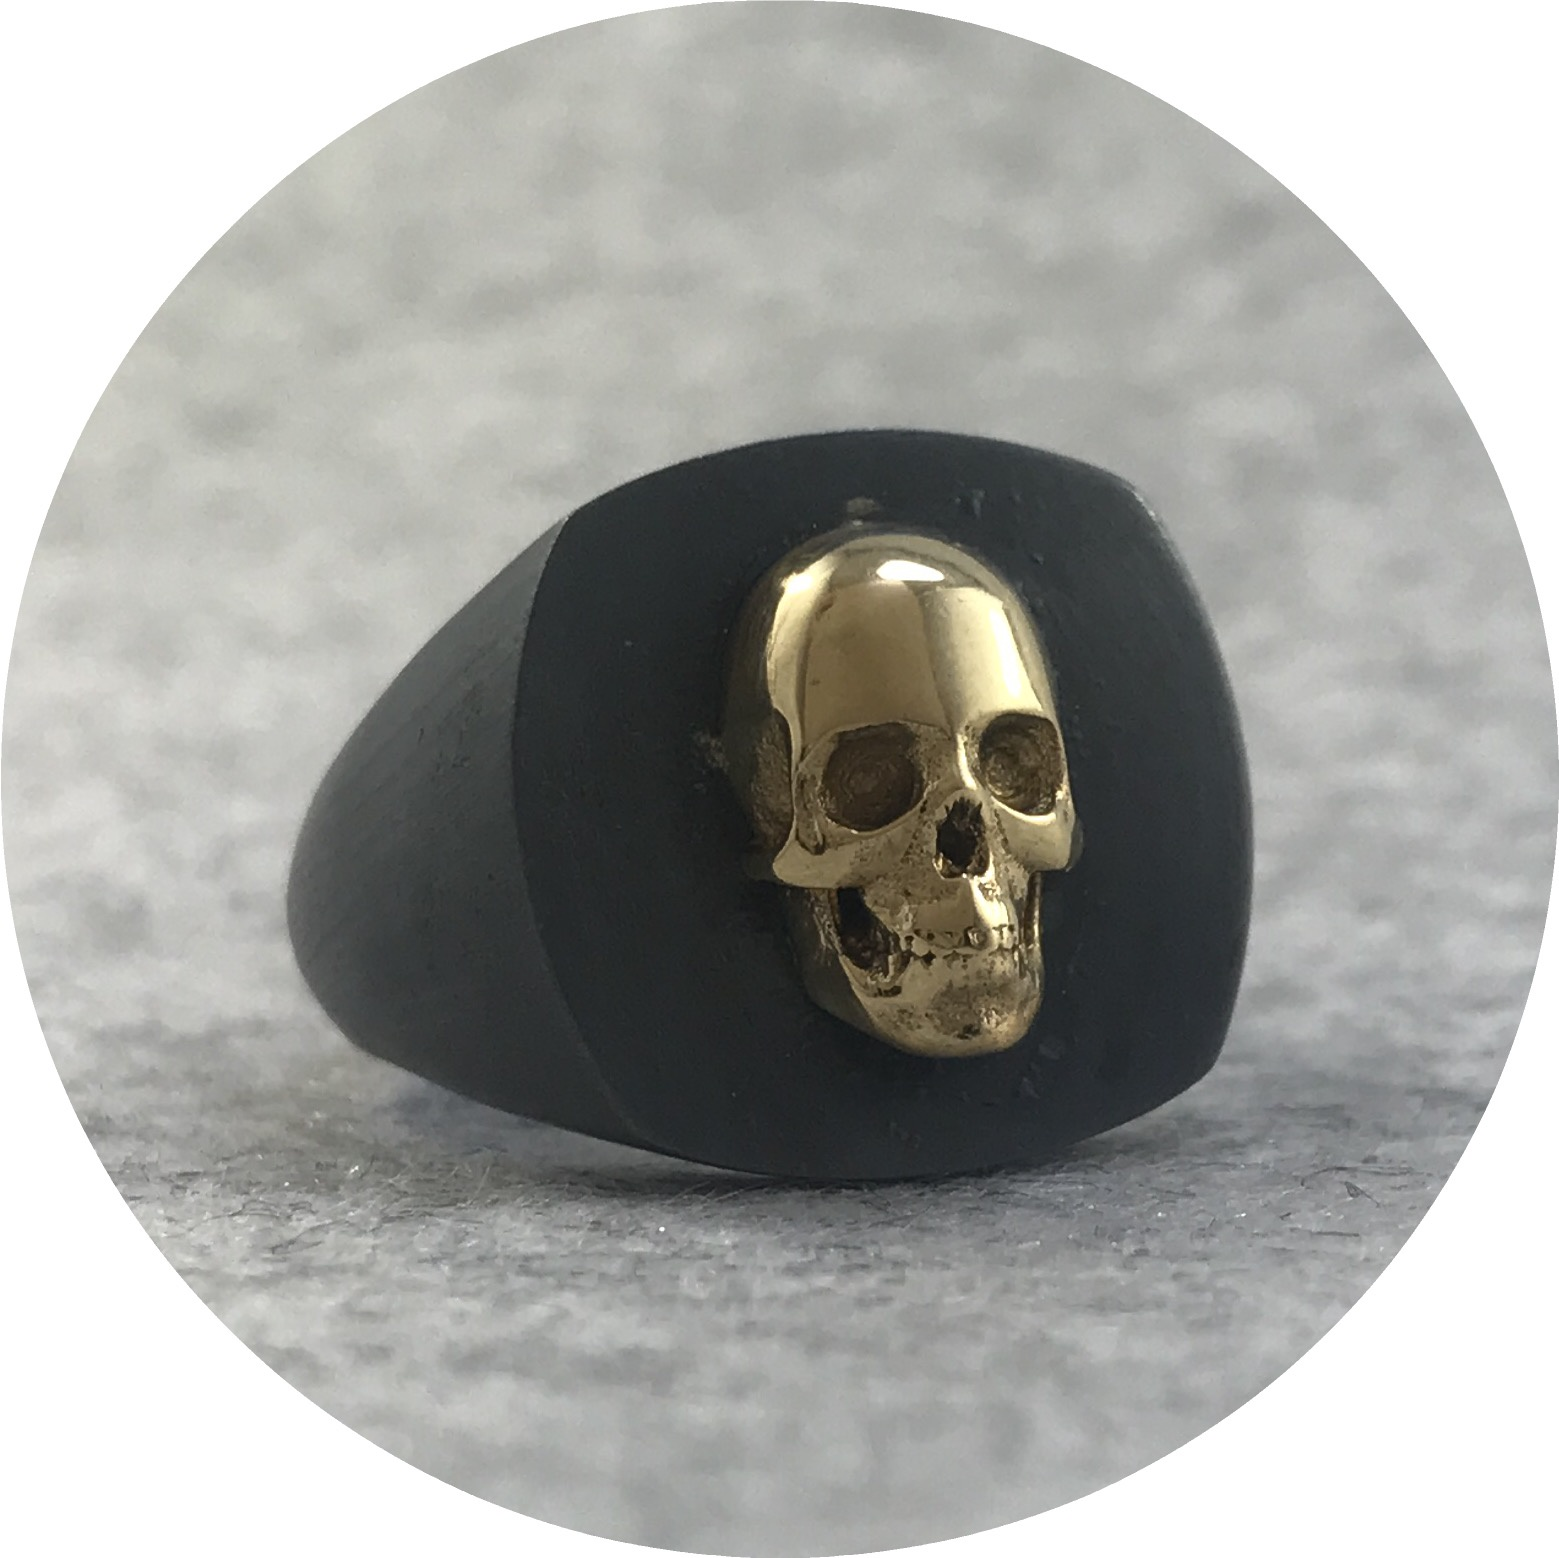 Fin Mahon - Skull Signet Ring in 9ct Yellow Gold and Oxidised Sterling Silver